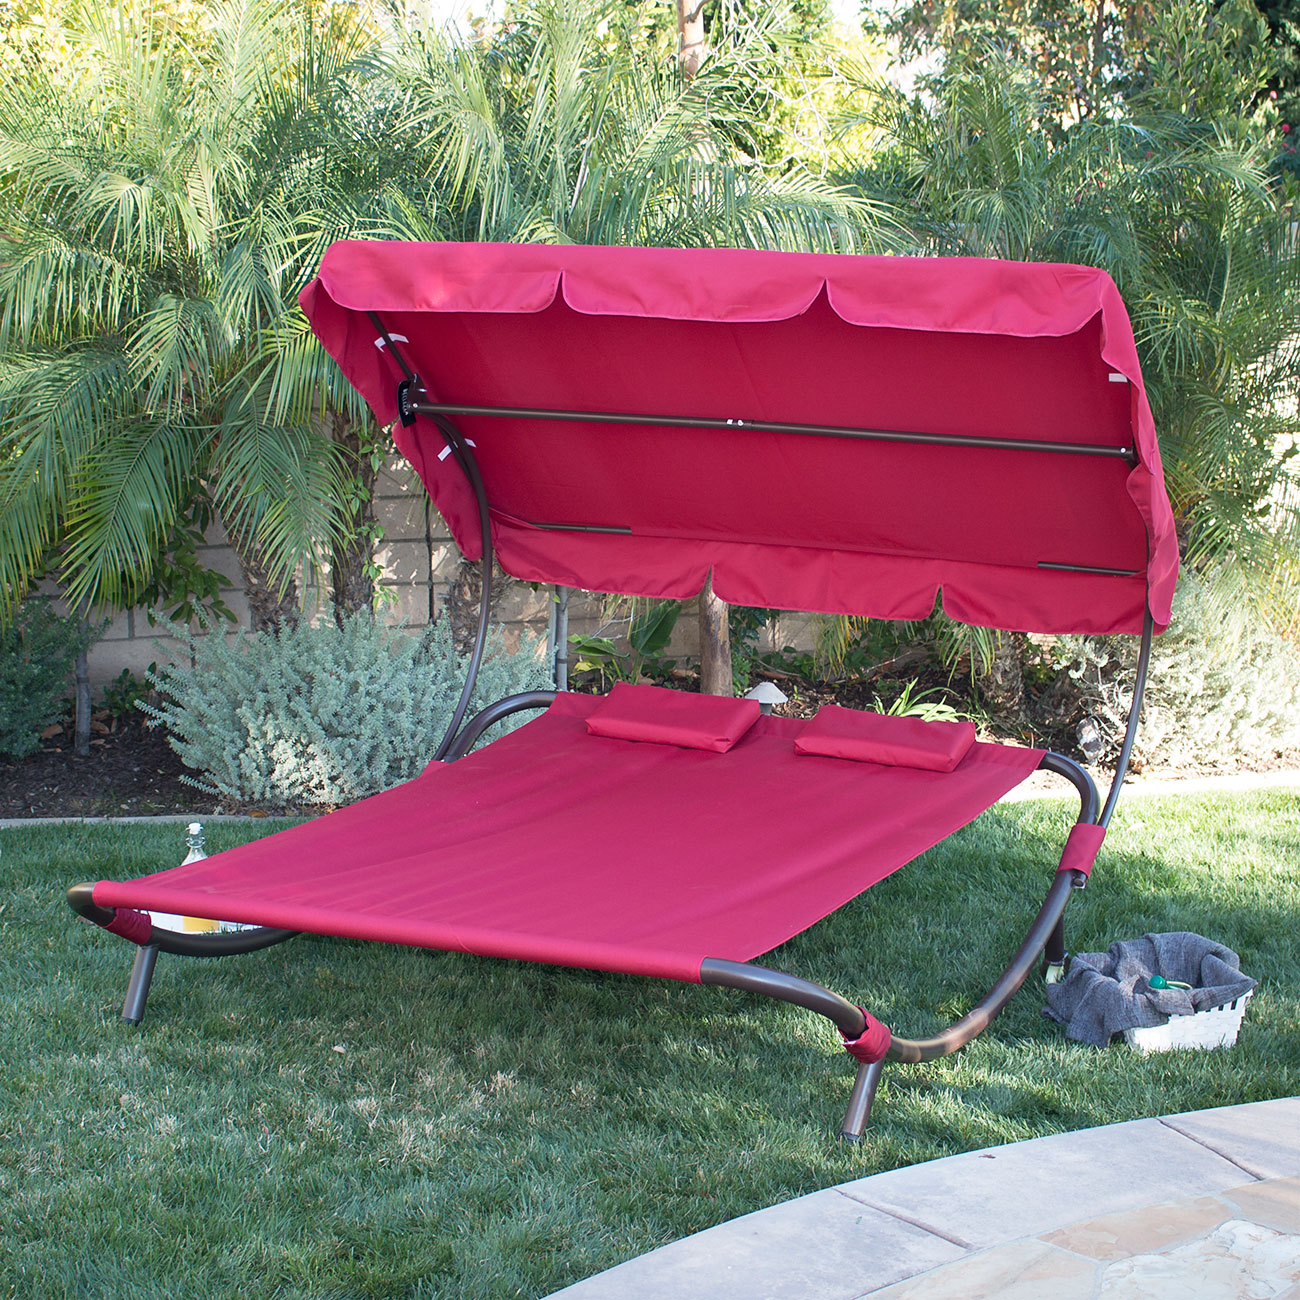 double lounge chair outdoor grain sack wide patio pool hammock bed lounger